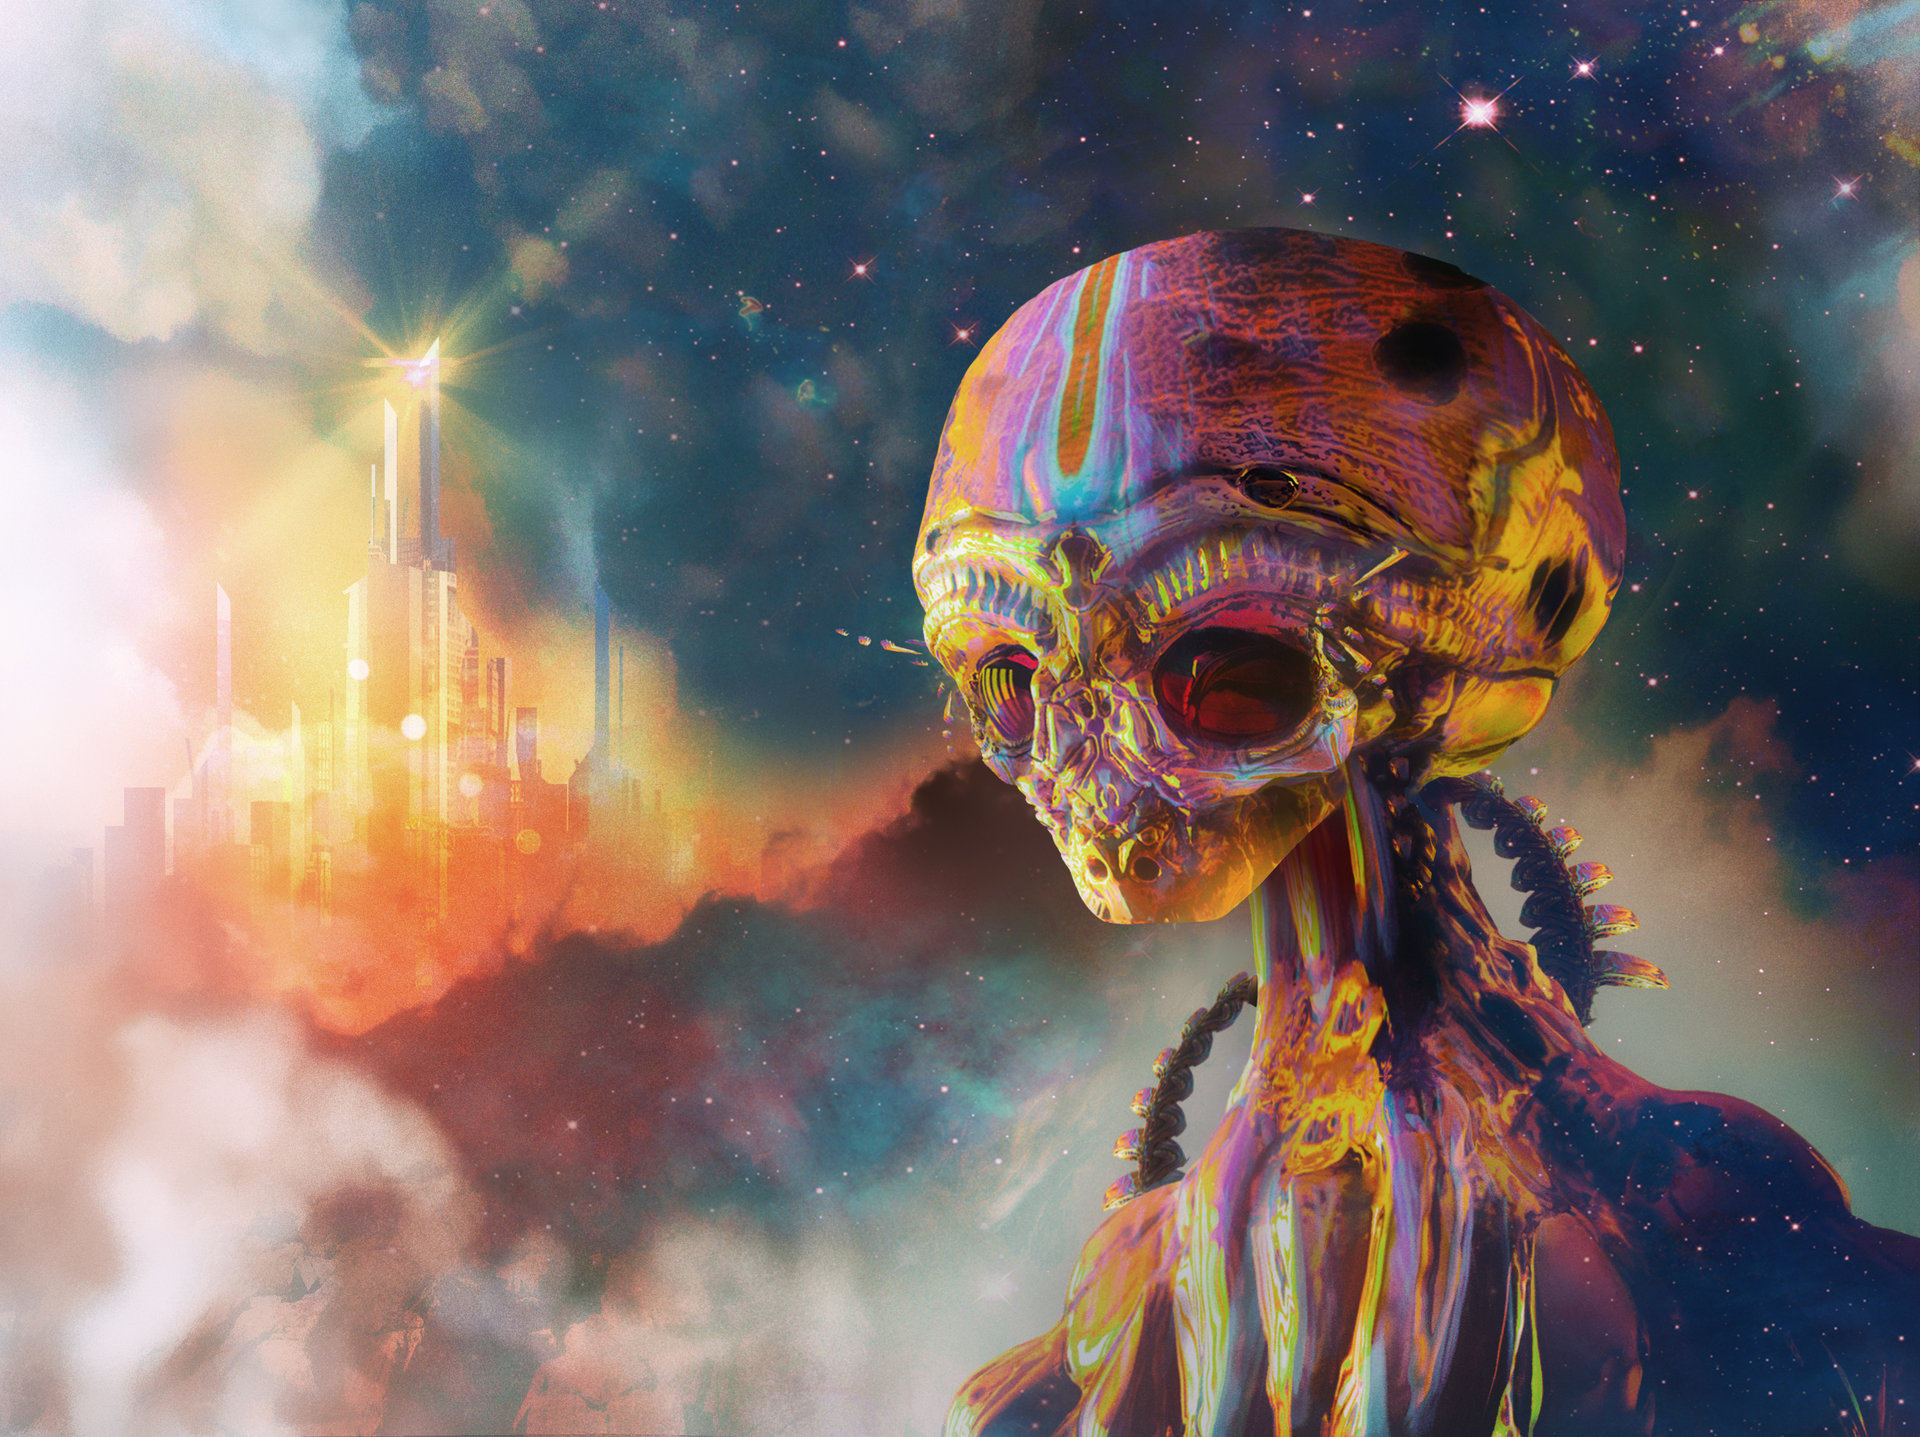 Alien Full HD Papel De Parede And Background Image